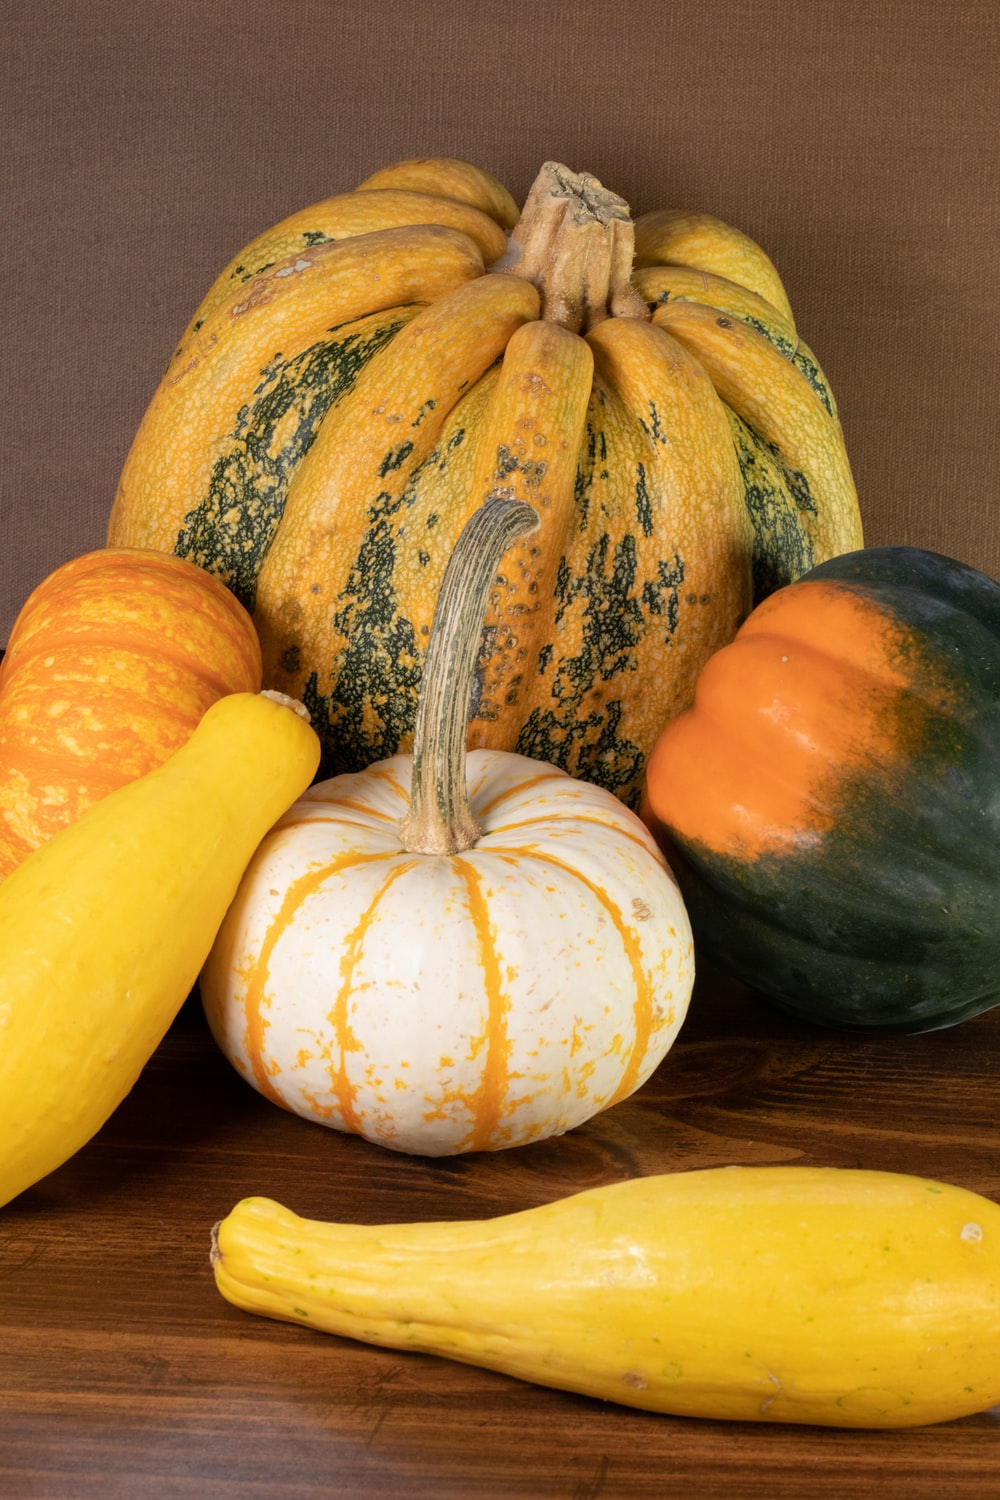 yellow and green pumpkin on brown wooden table